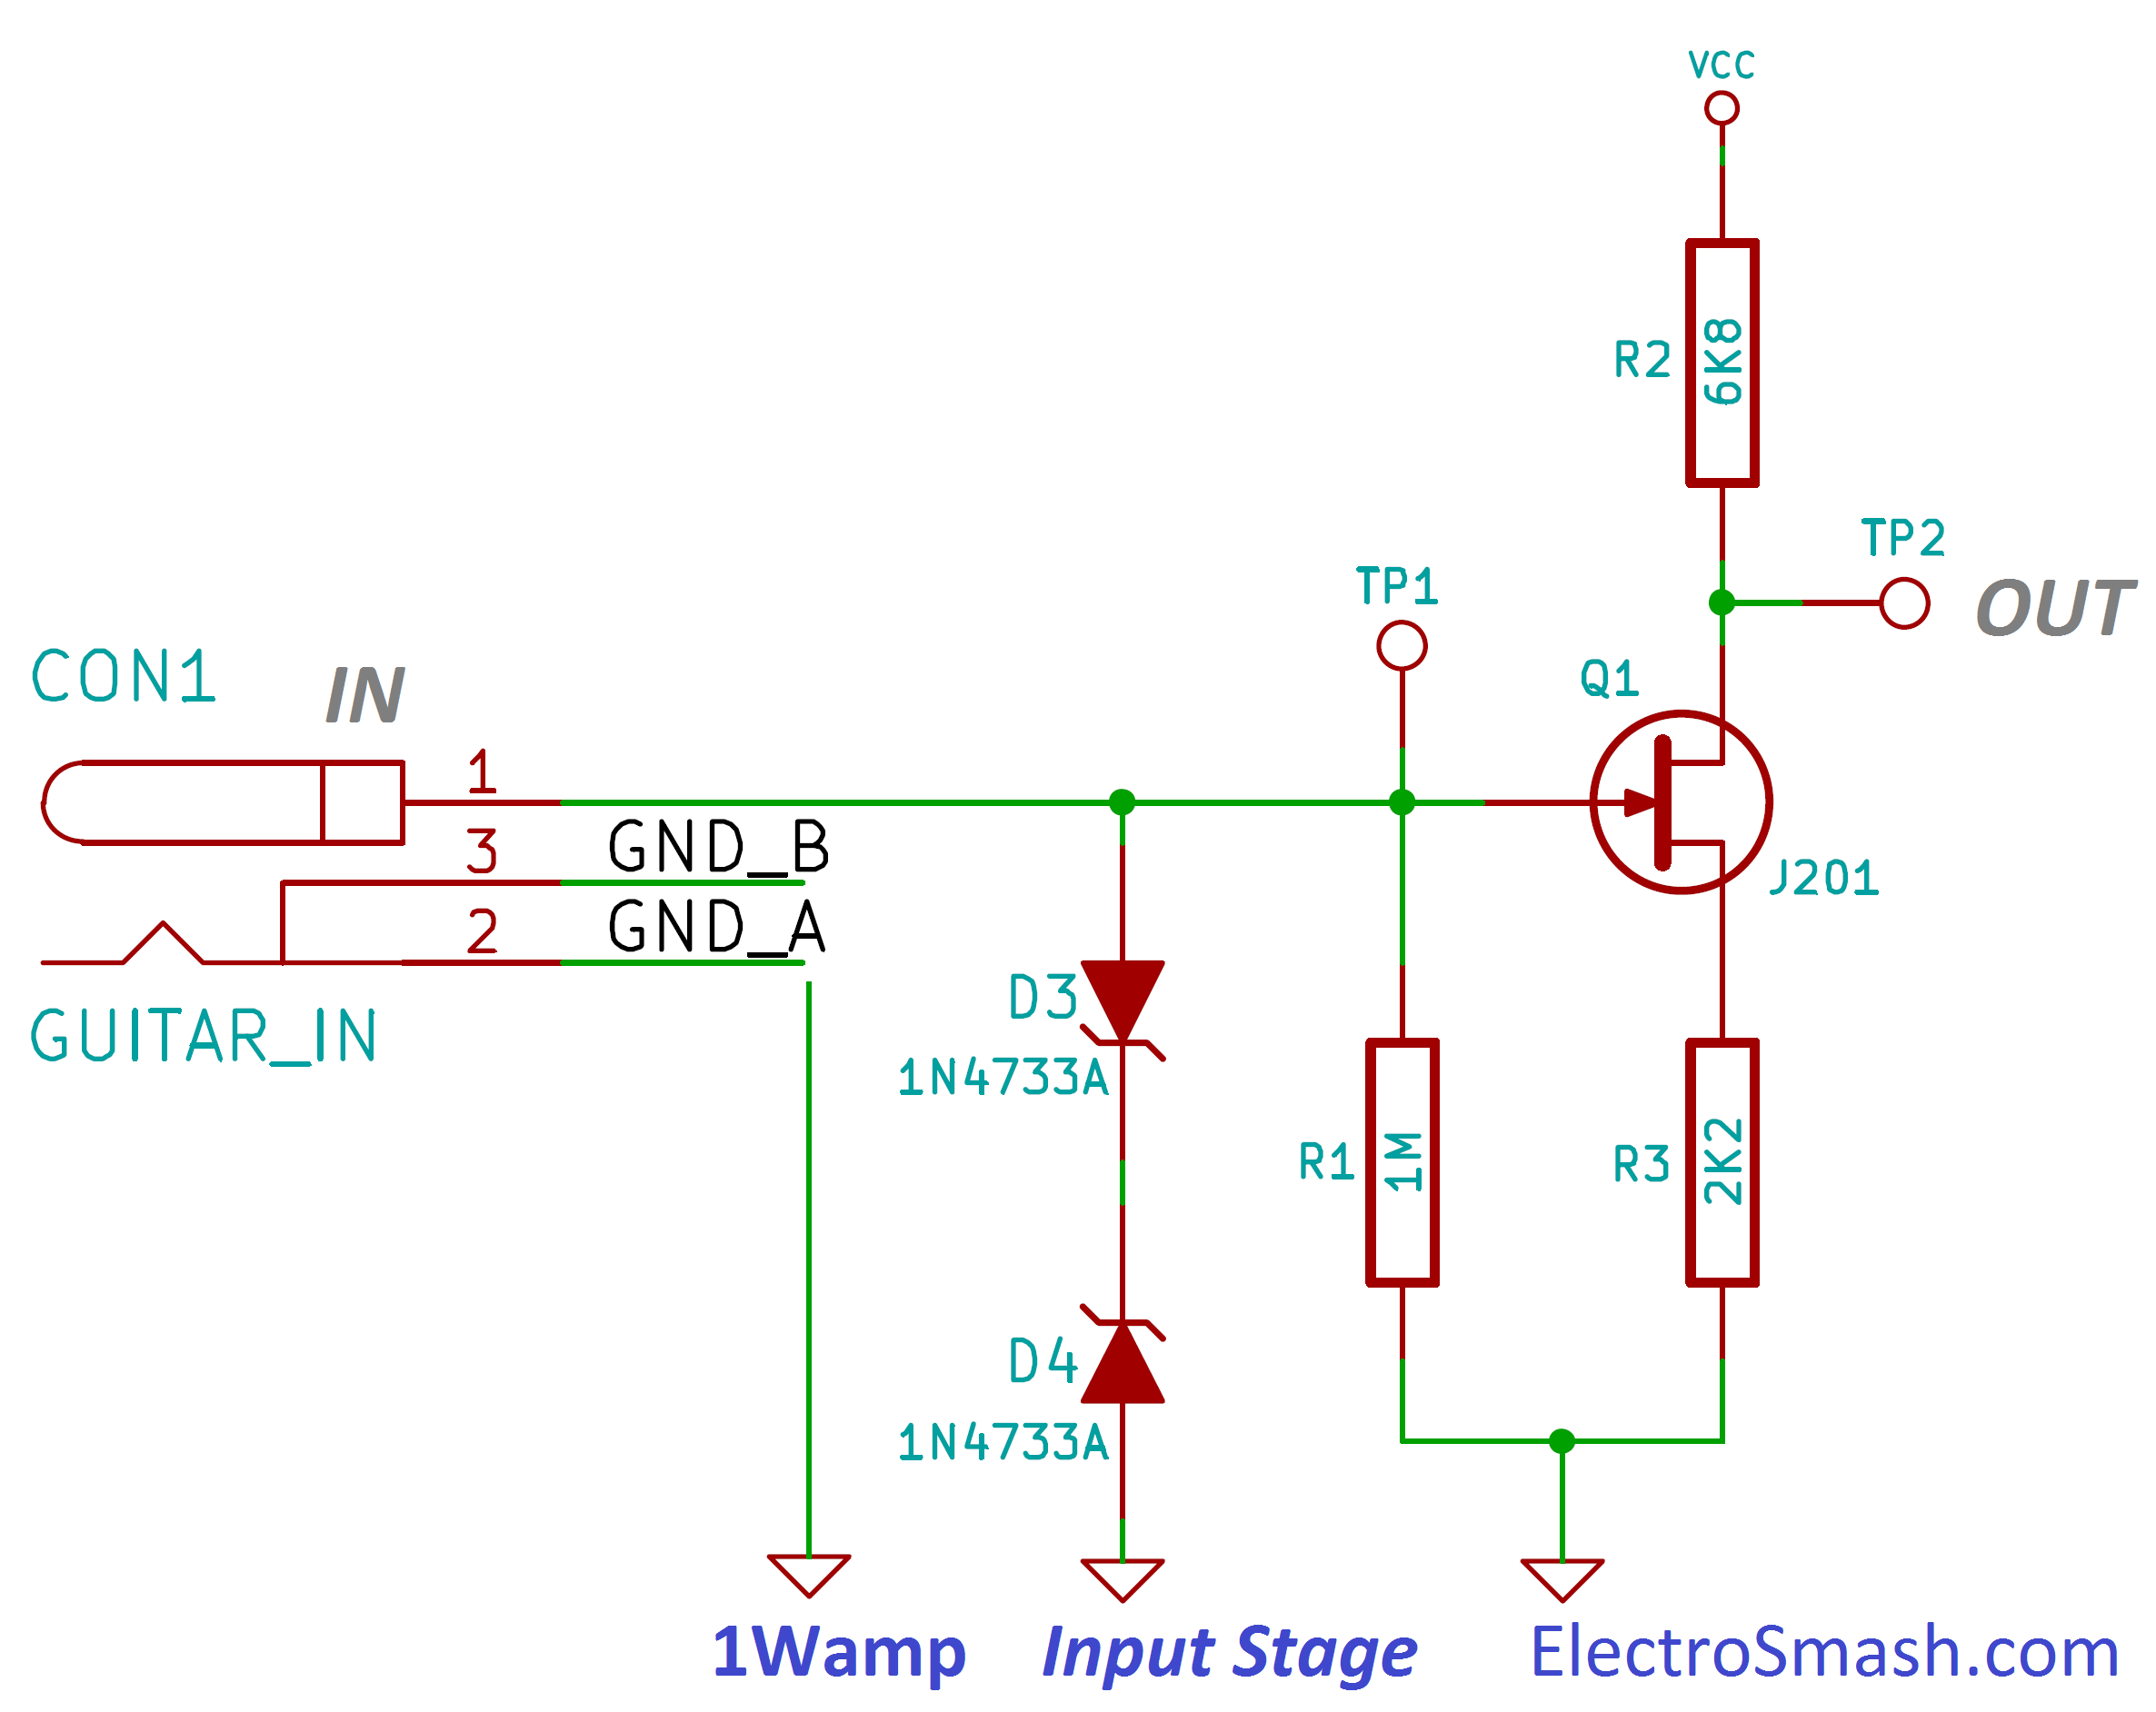 TM 55 1520 240 T 3 752 likewise Analog To Analog Conversion  litude Modulation moreover 1w additionally Build A Great Sounding Audio  lifier With Bass Boost From The Lm386 besides 6 Simple Circuits To Reduce Air Consumption Part 1 Of 2. on simple filter circuit